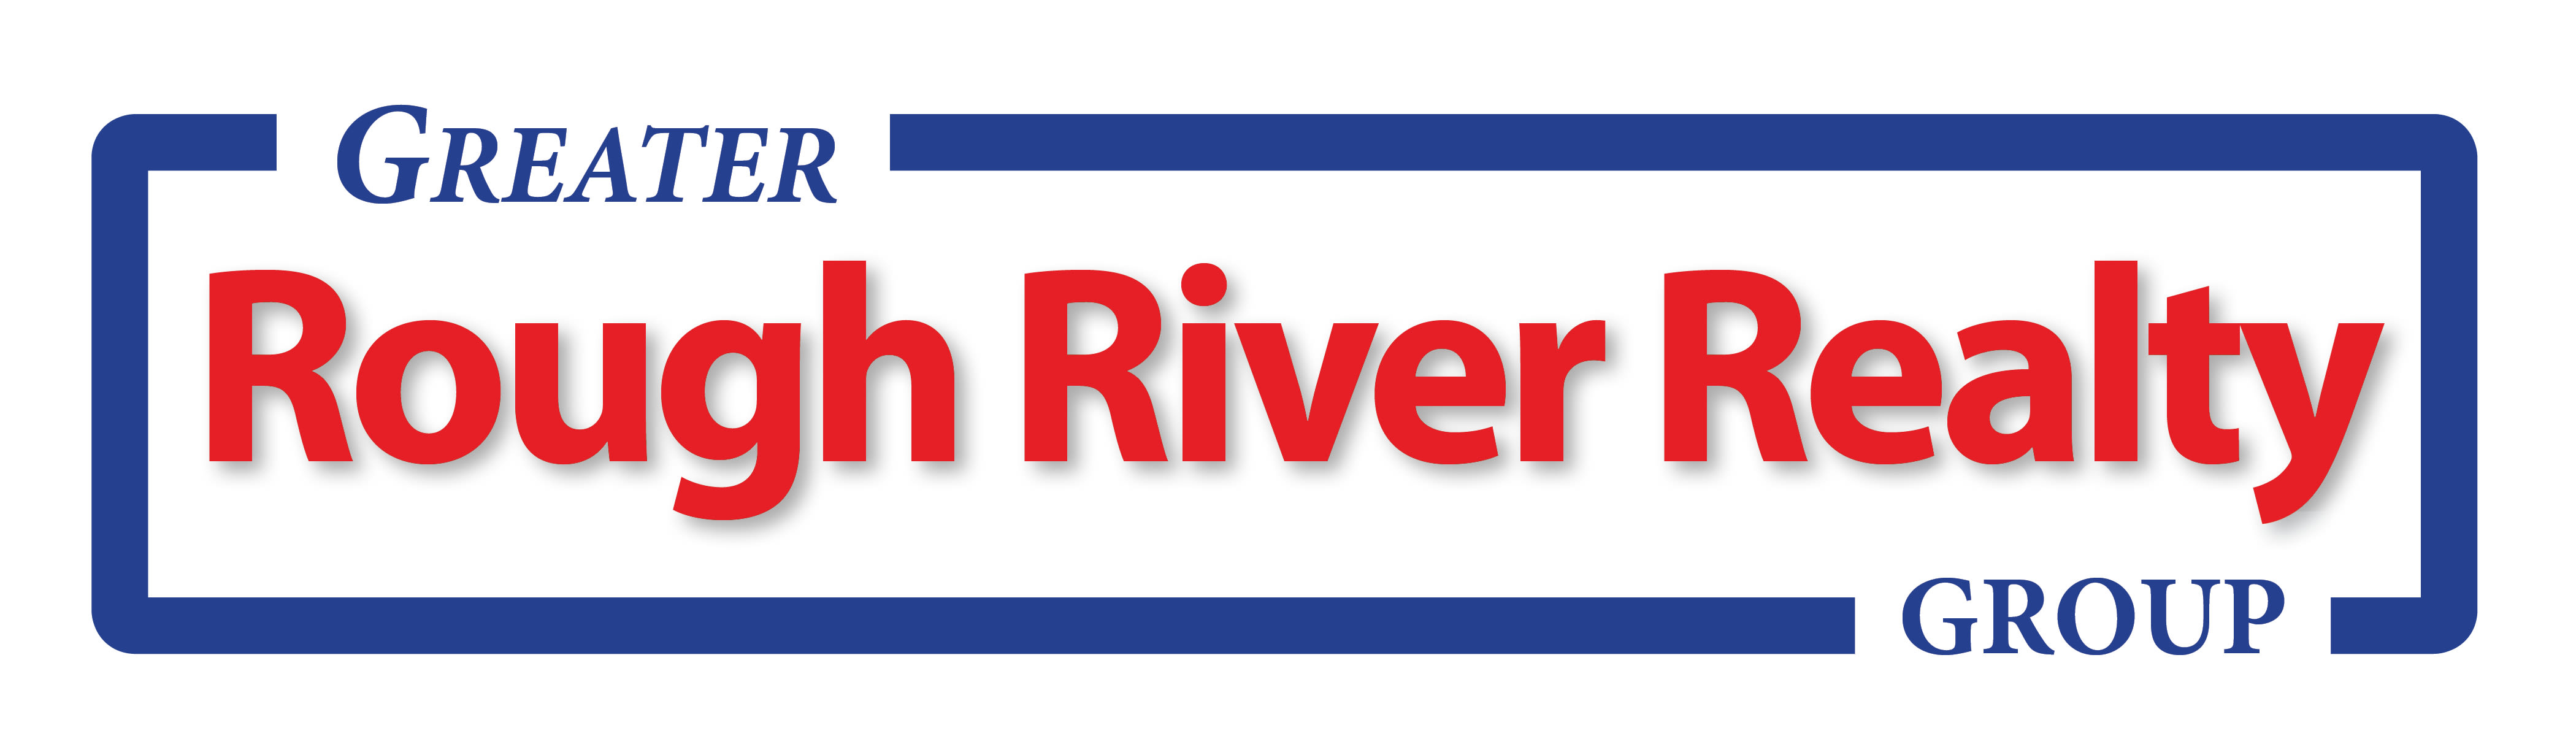 Greater Rough River Realty Group